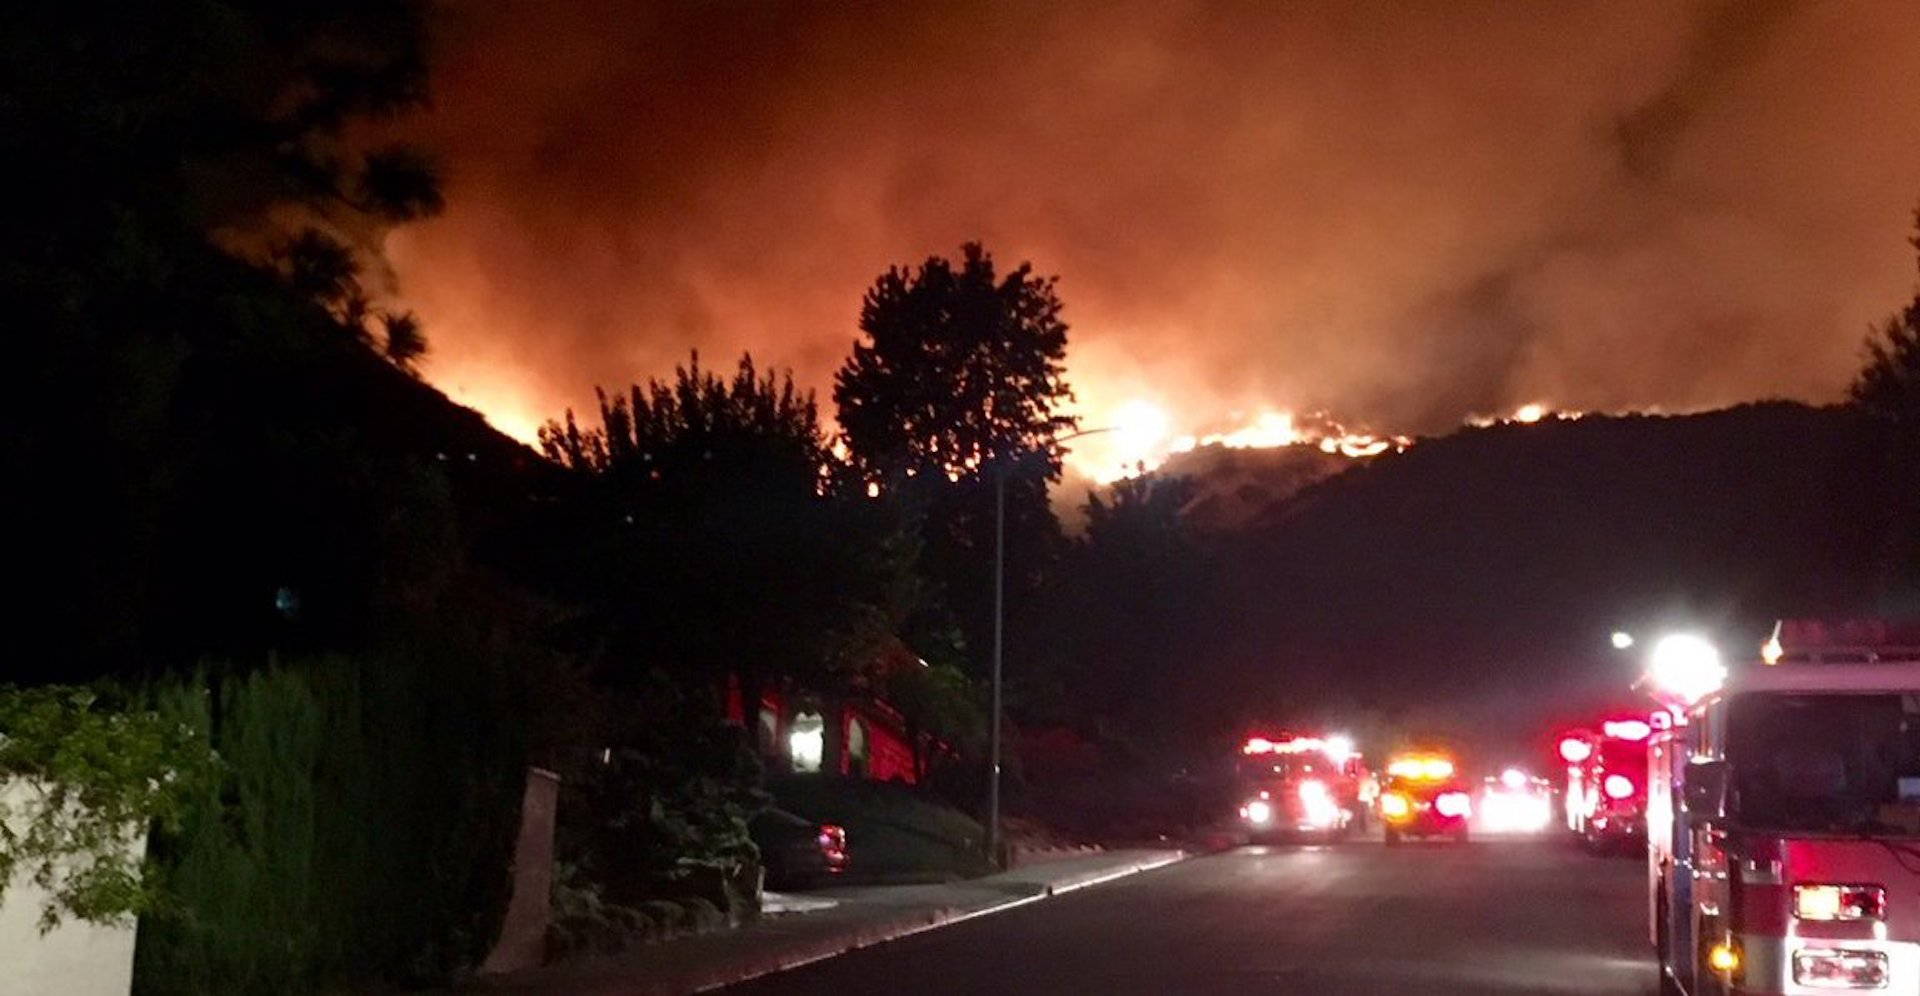 Largest fire in Los Angeles history forces hundreds to evacuate